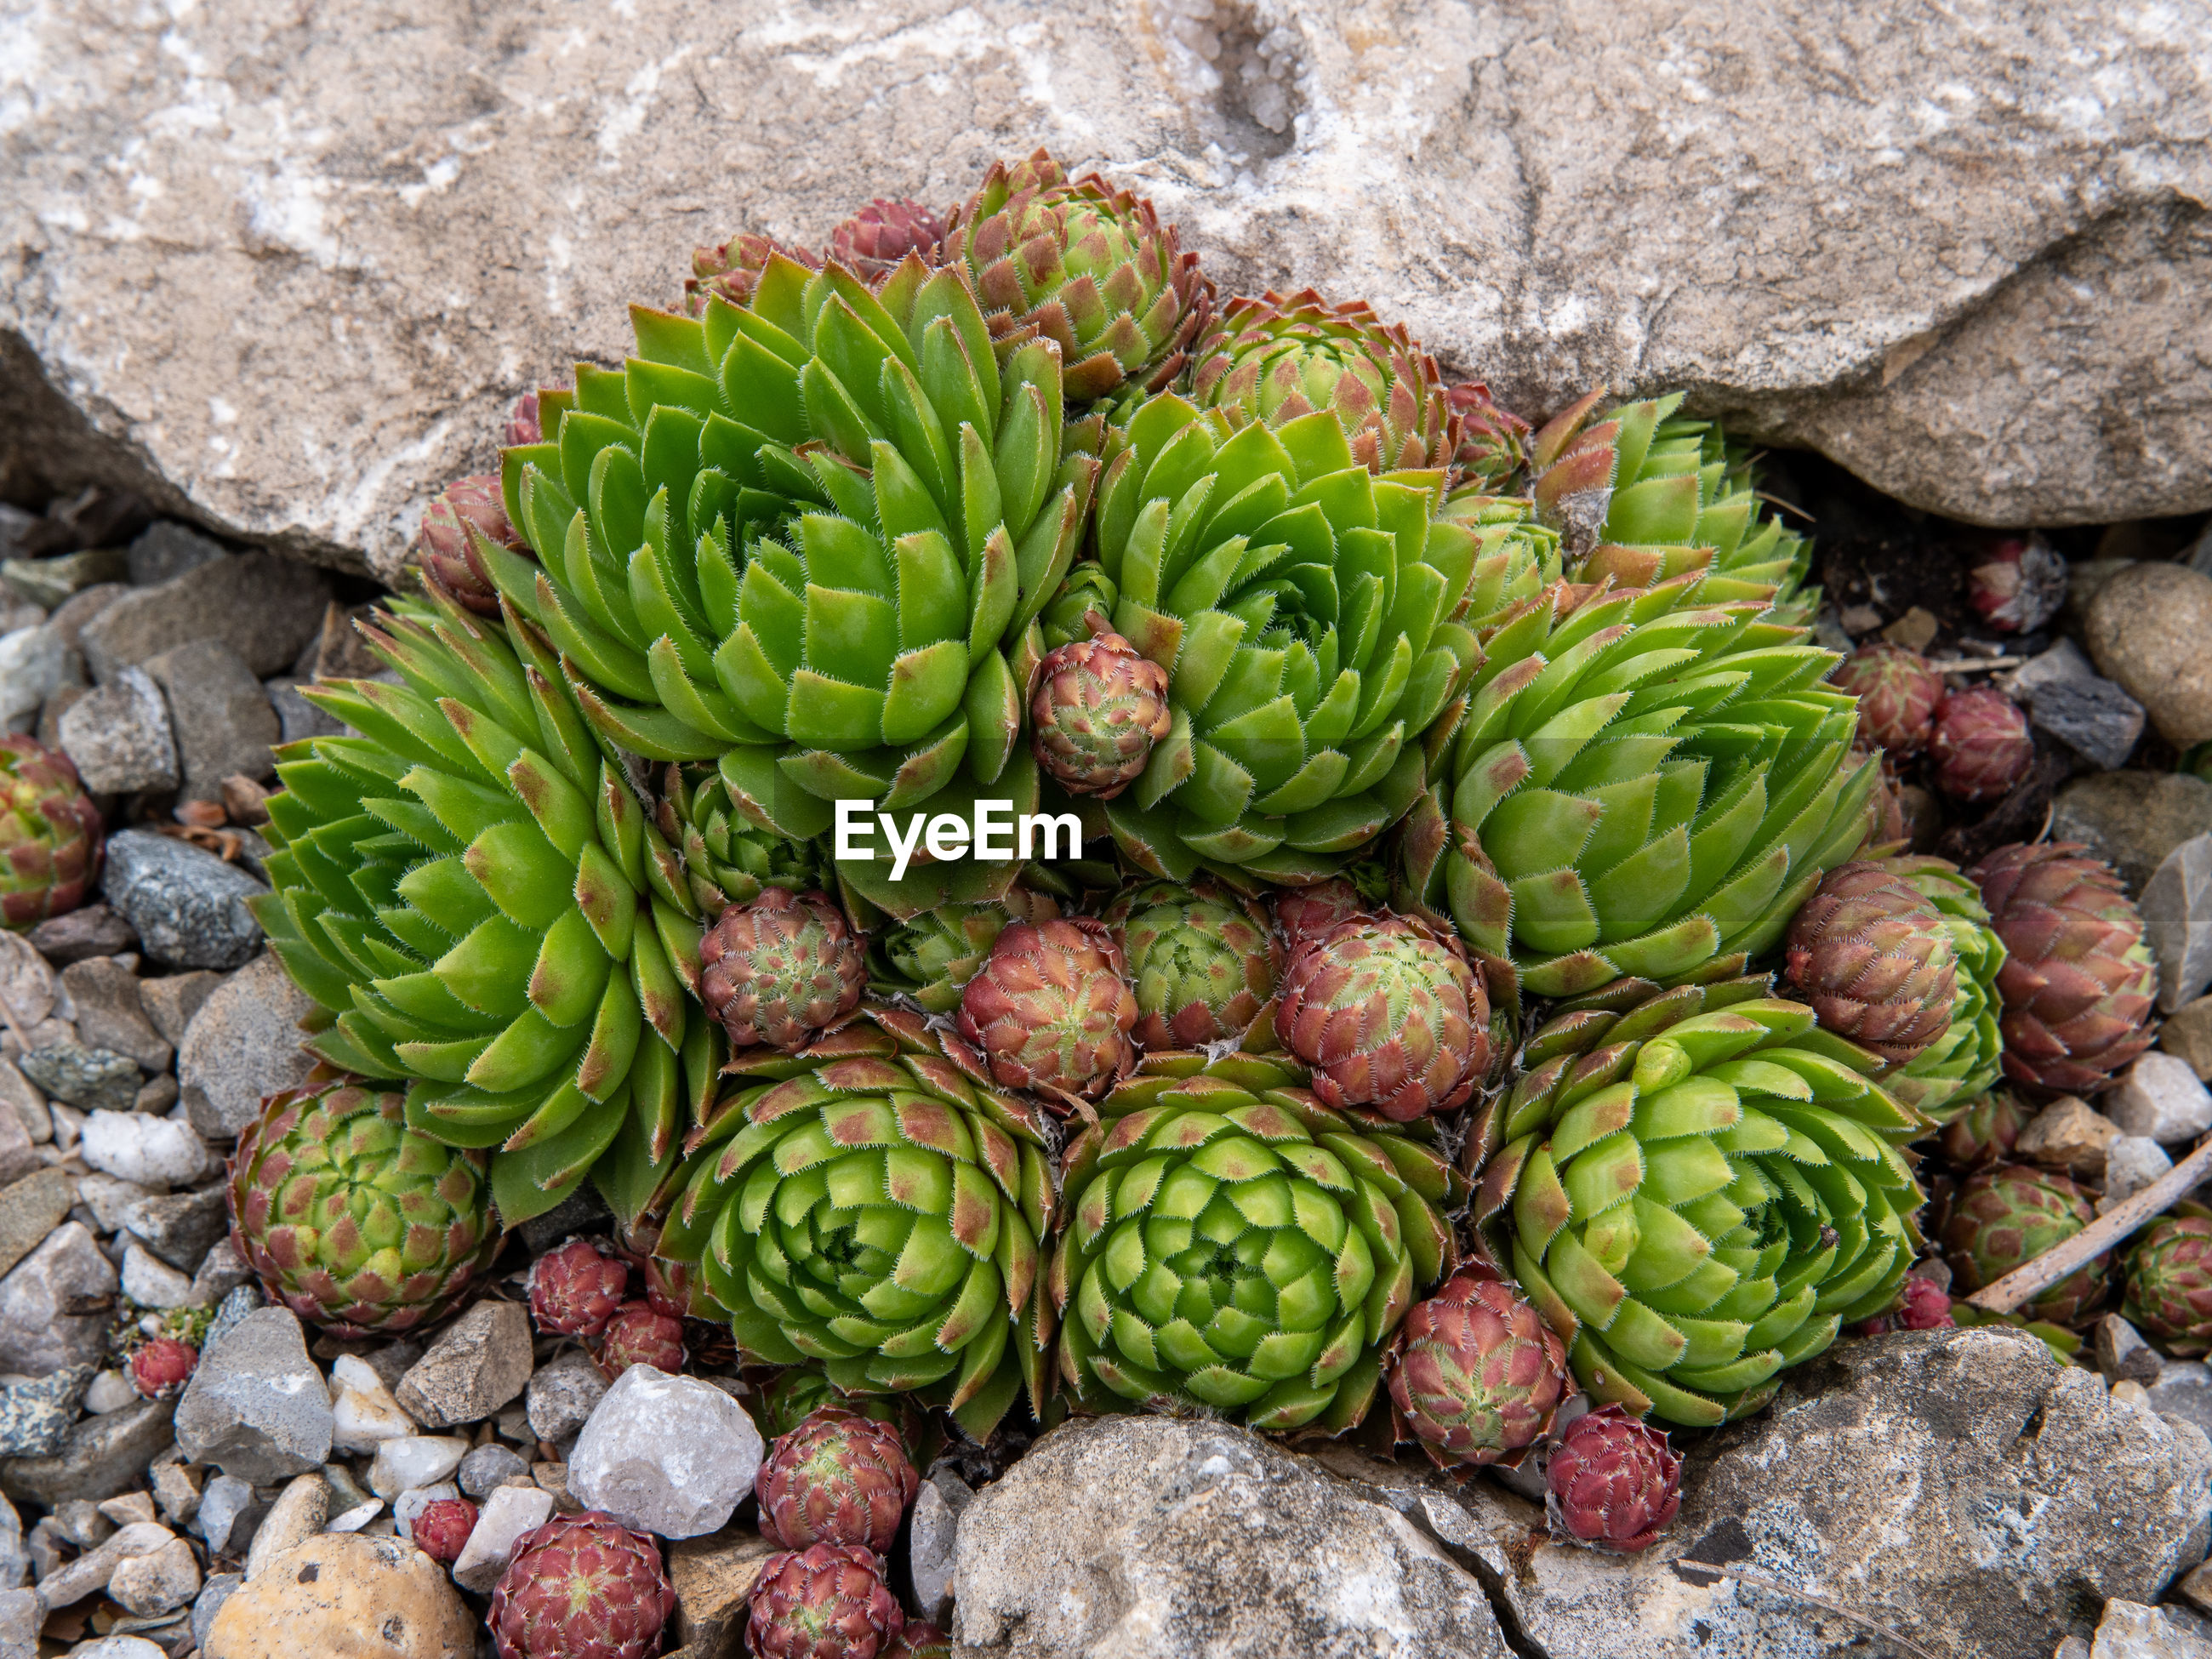 CLOSE-UP OF GREEN FRUITS ON ROCK